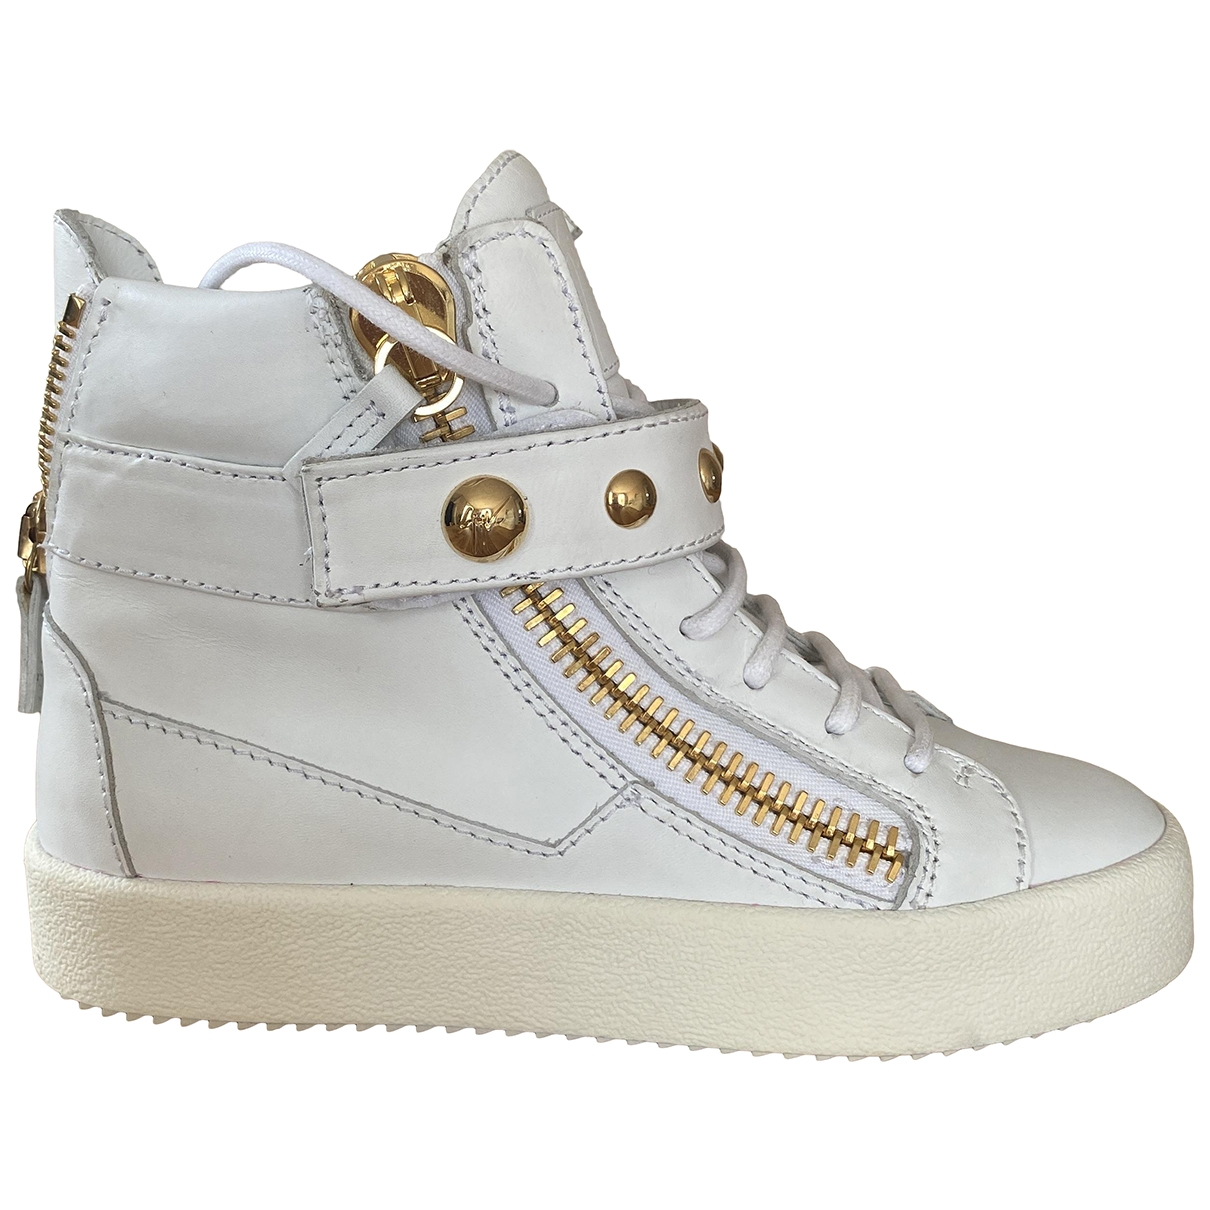 Giuseppe Zanotti Donna White Leather Trainers for Women 35 IT